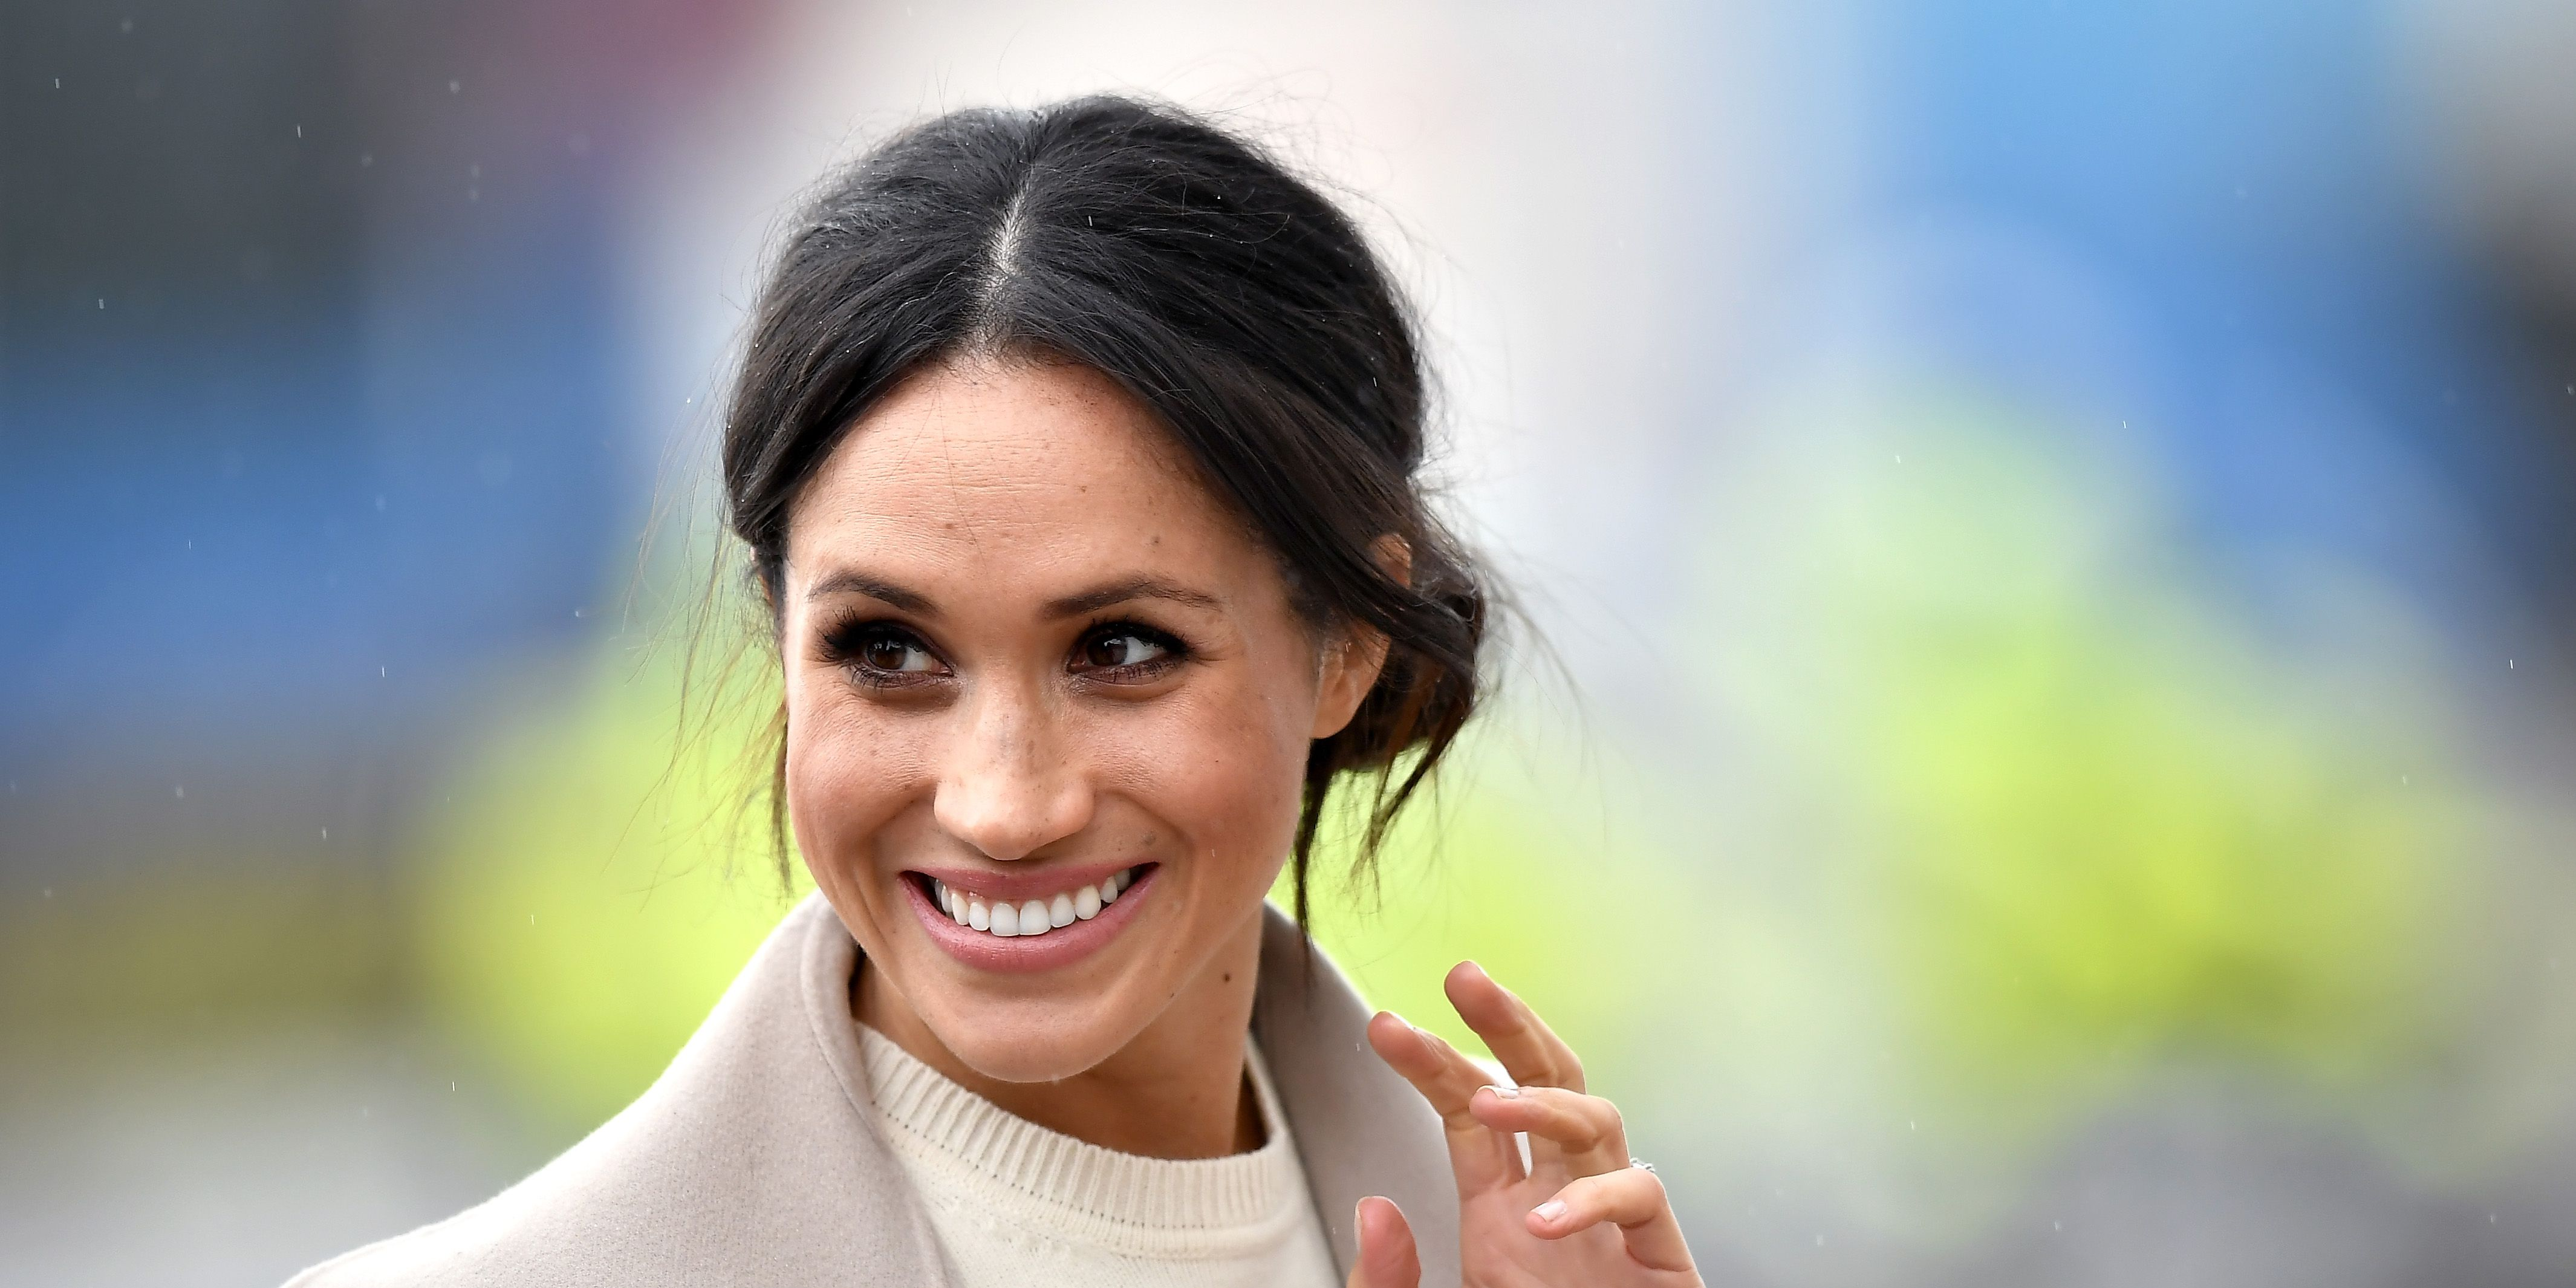 Here's Why Meghan Markle's Instagram Account Was Mysteriously Reactivated